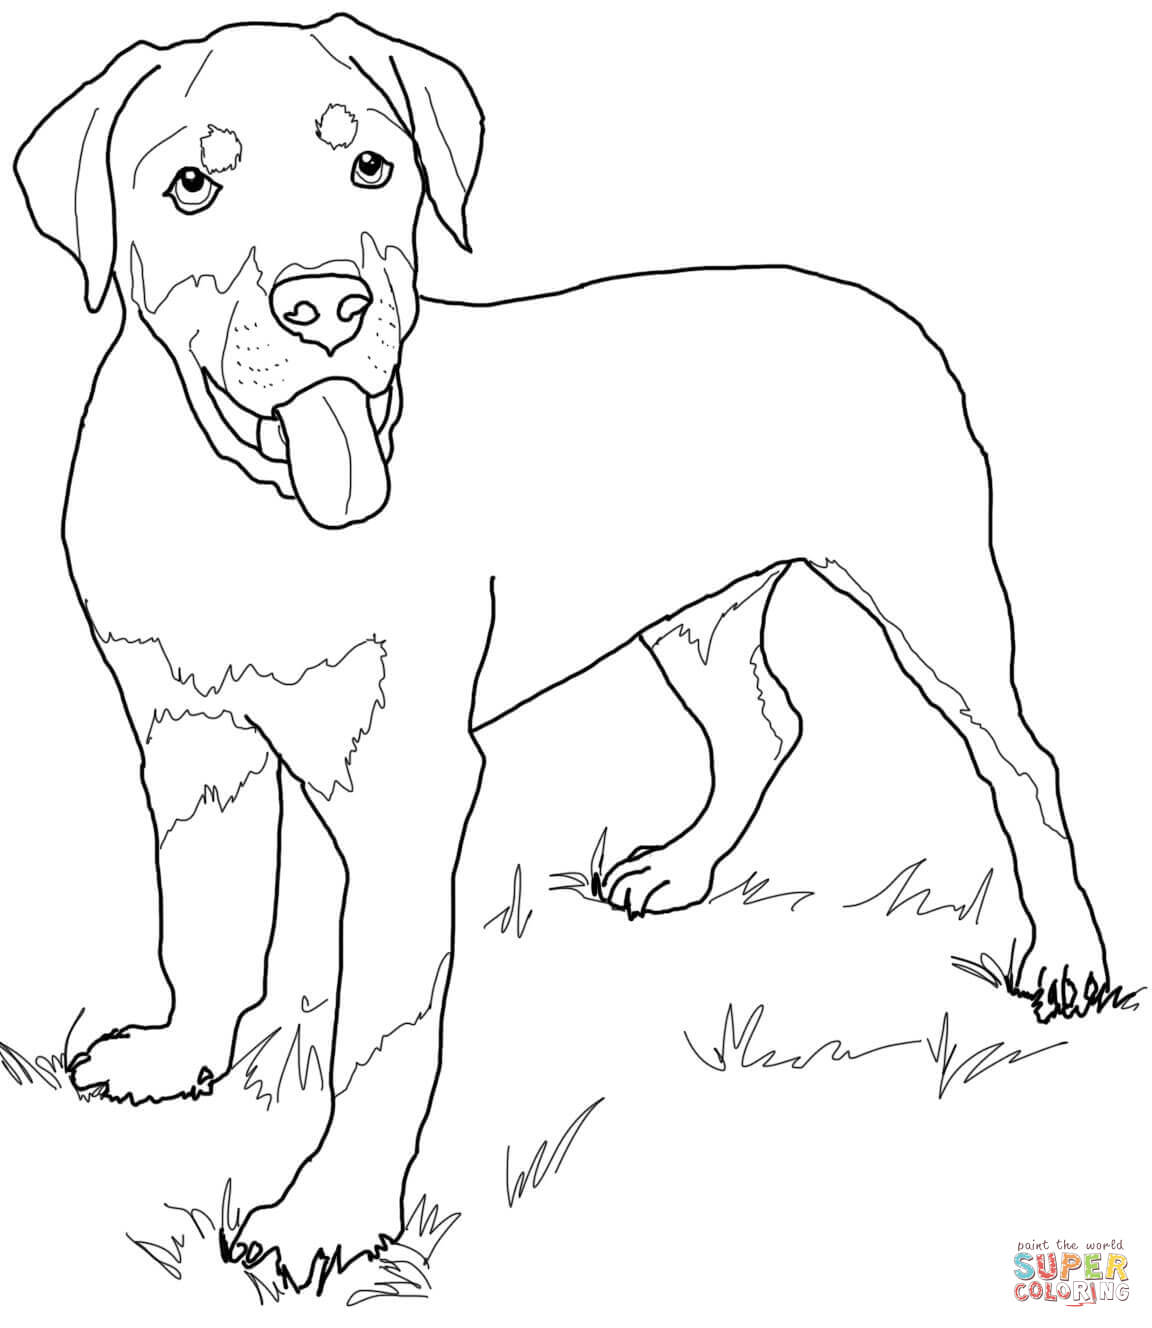 black lab coloring pages black lab line drawing at getdrawings free download pages lab coloring black